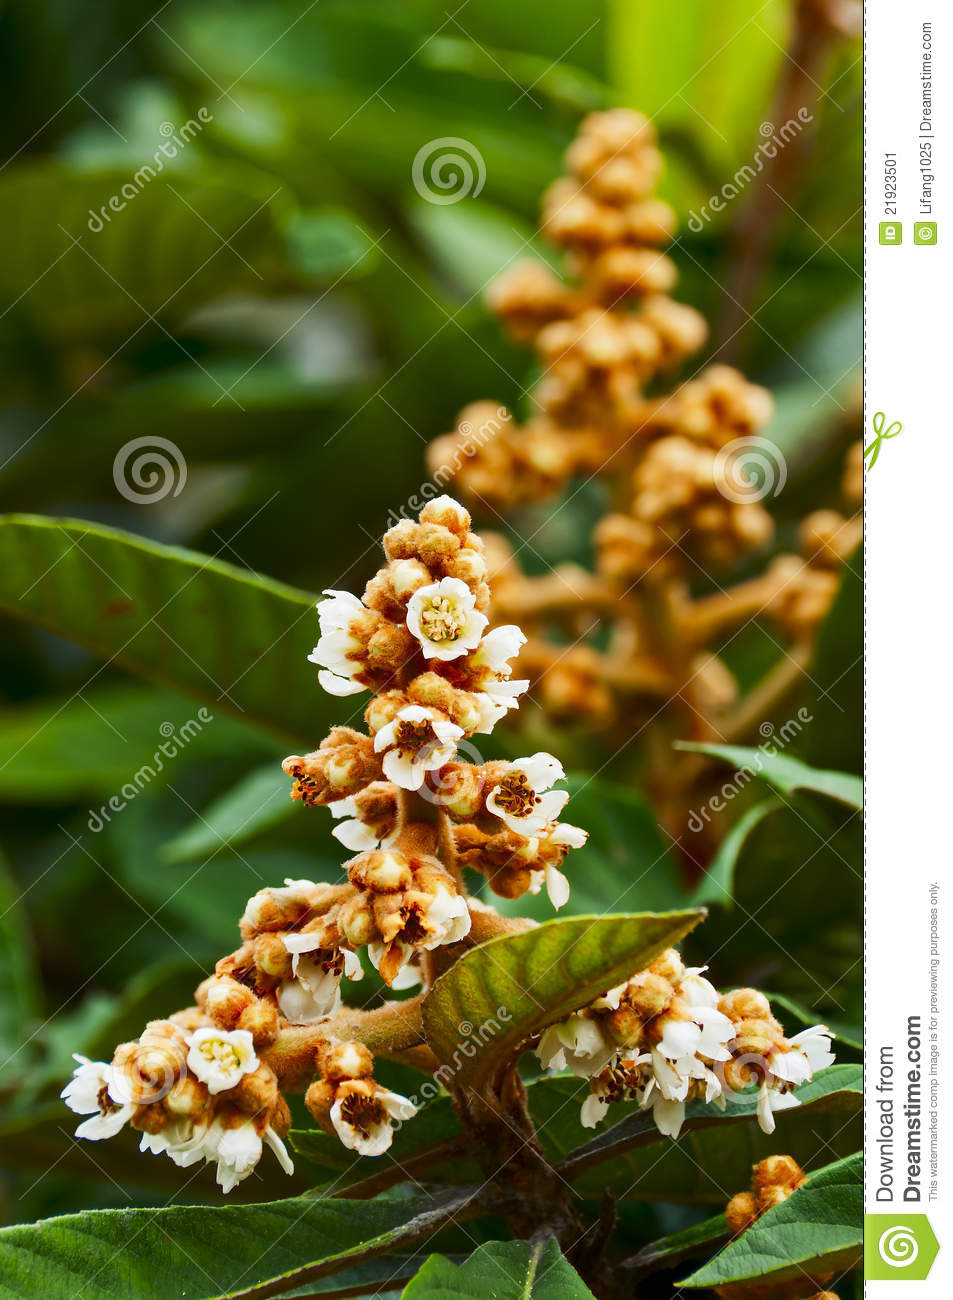 Loquat tree with flower